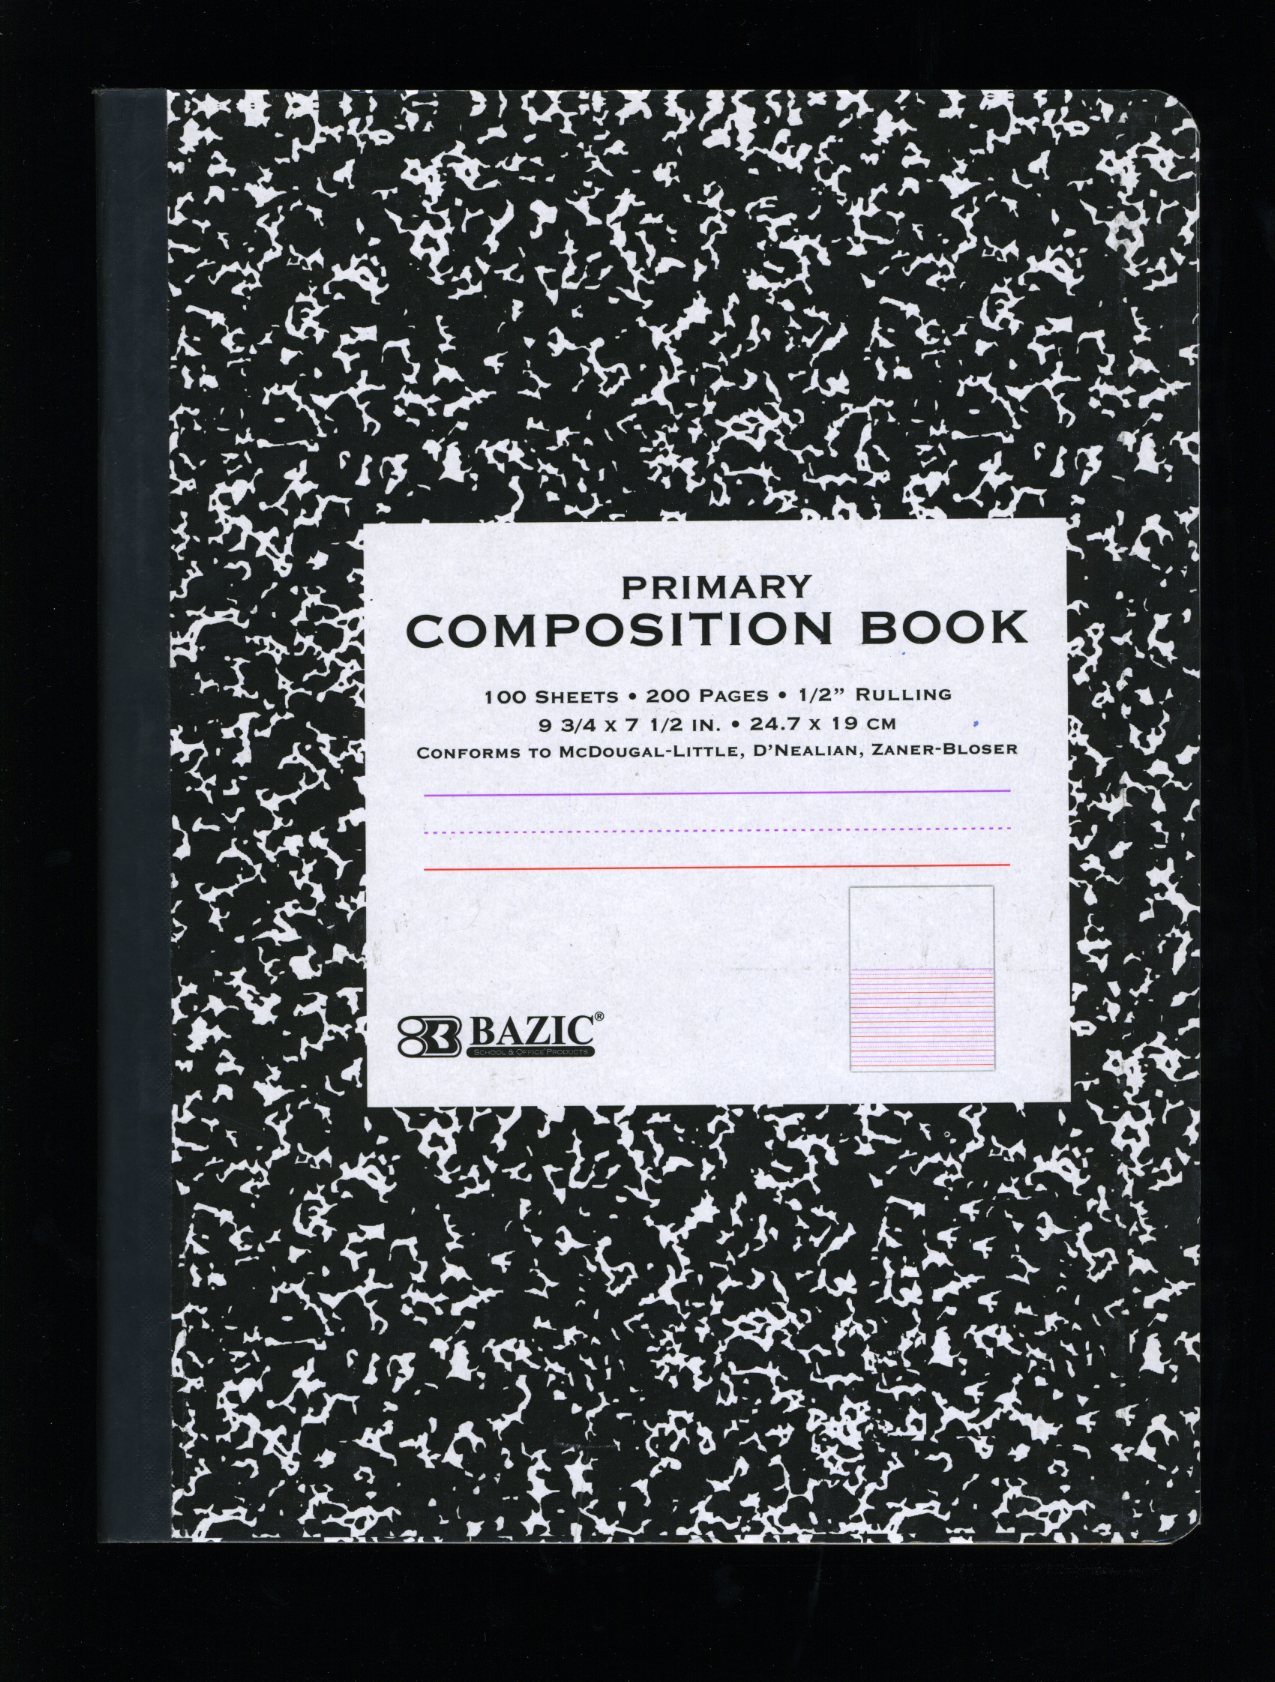 Composition Book Cover Background ~ Composition books vernacular typography